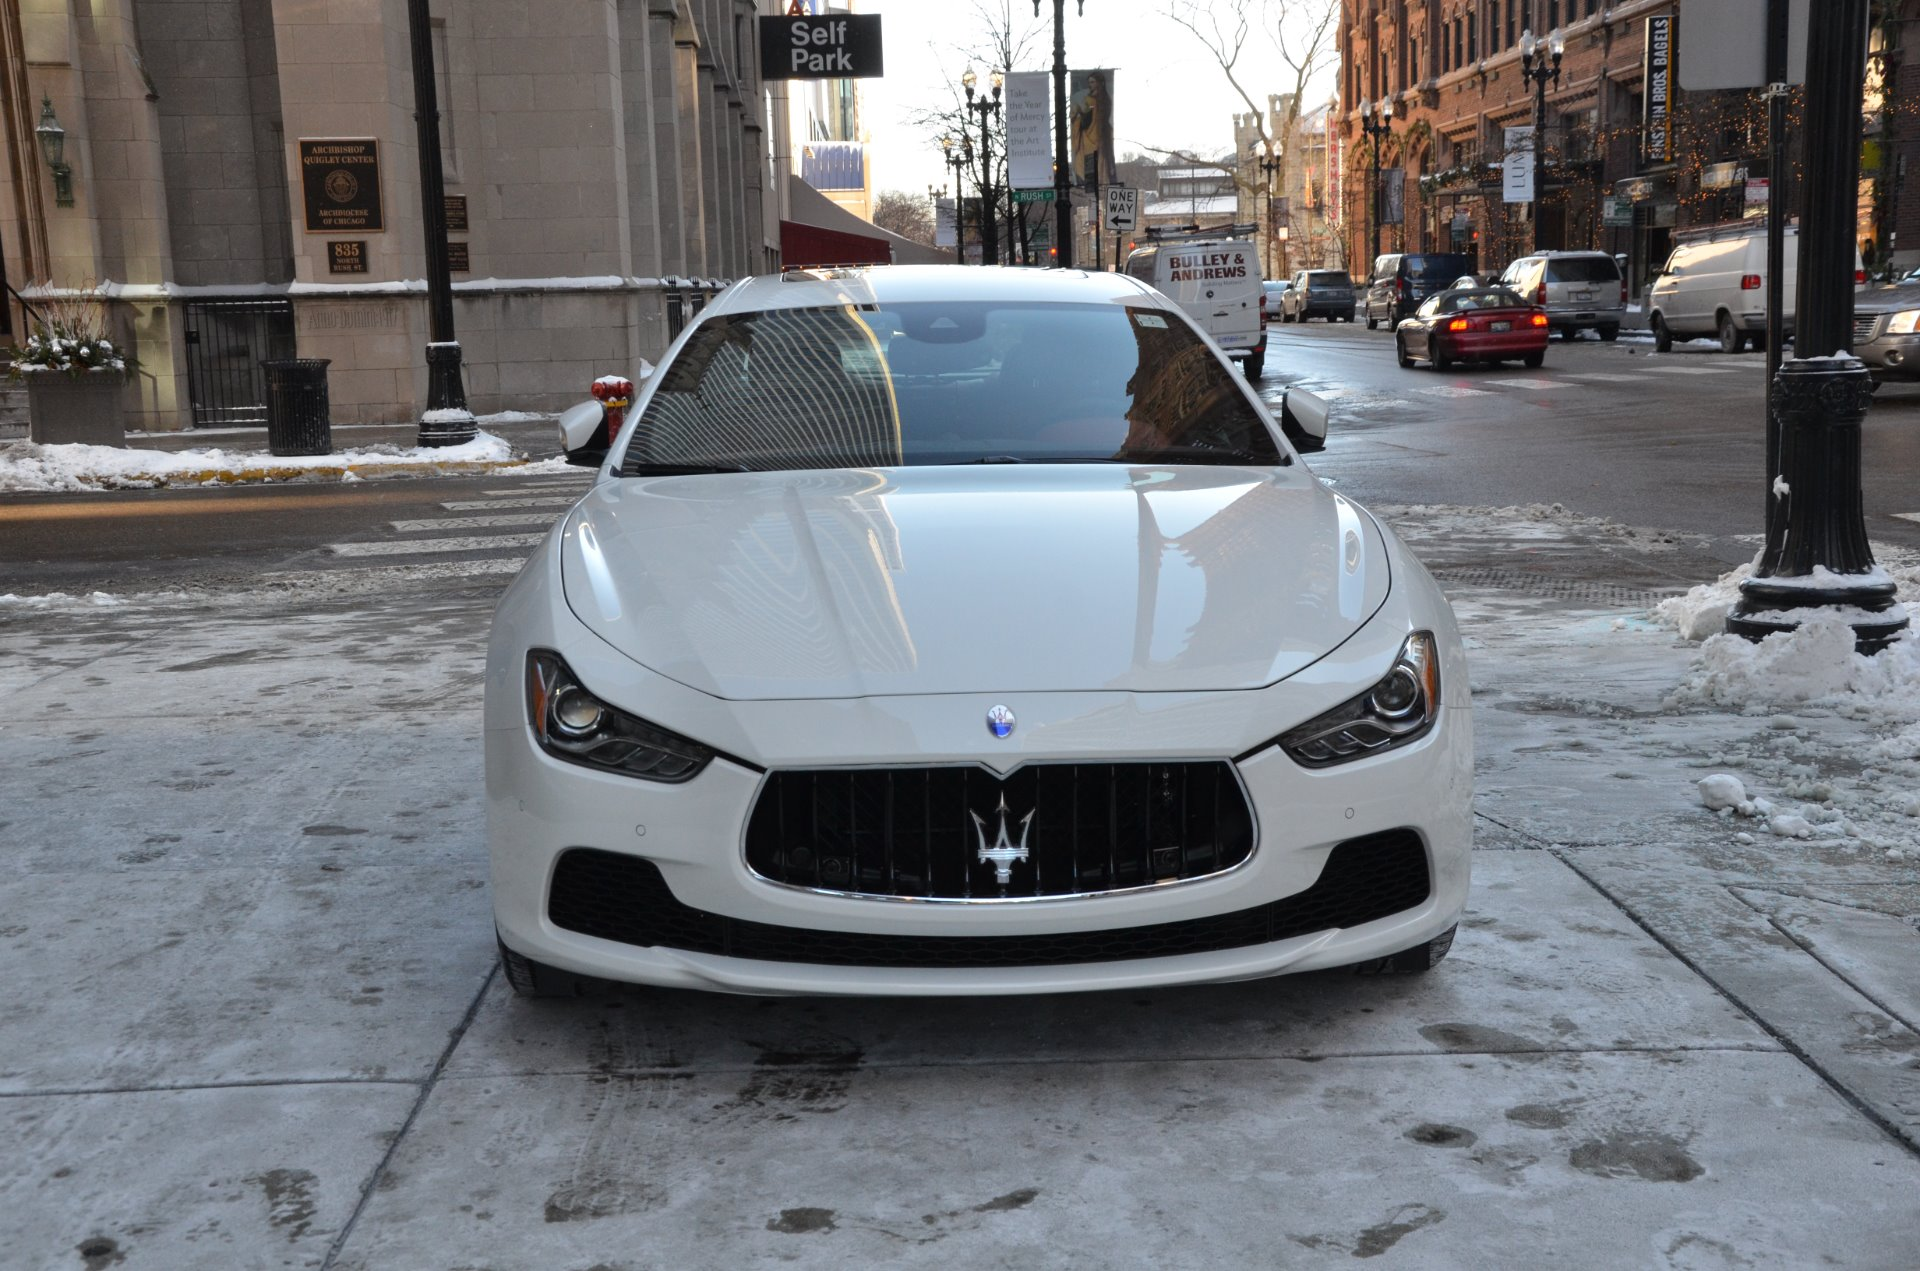 2017 maserati ghibli sq4 s q4 stock m547 for sale near chicago il il maserati dealer. Black Bedroom Furniture Sets. Home Design Ideas